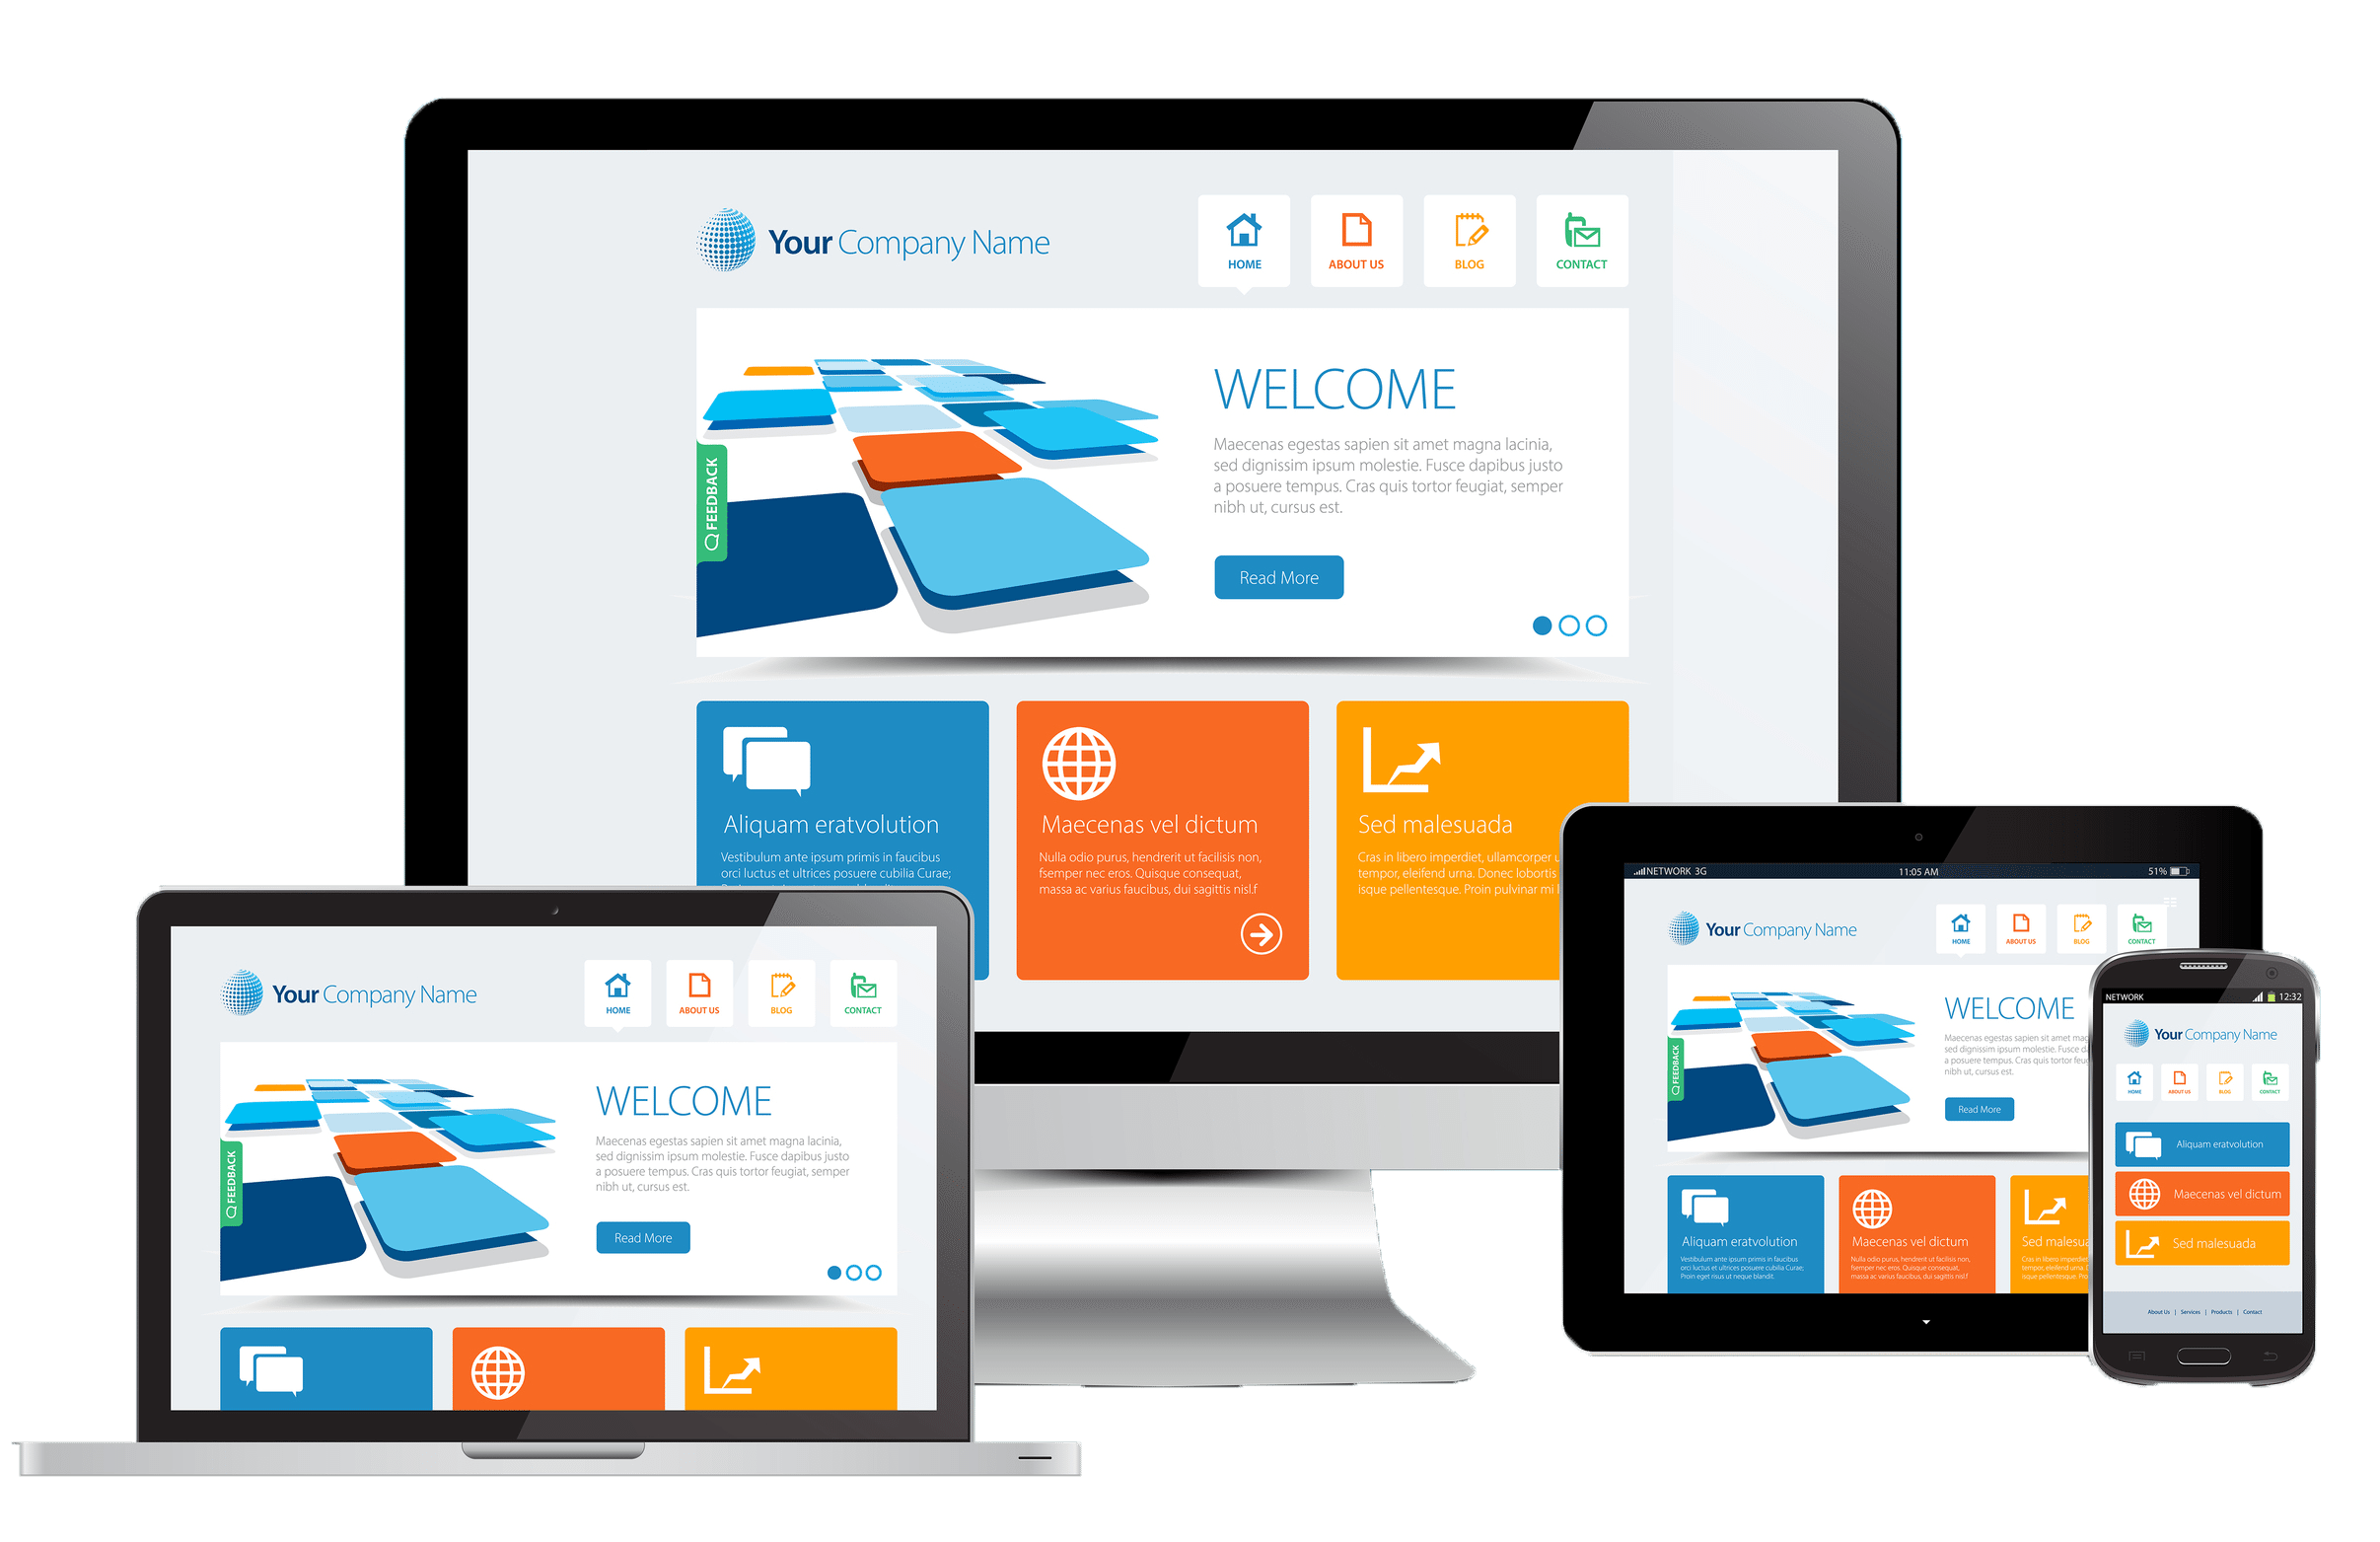 website design company, web design, website design macomb county, affordable website design, web design and development company